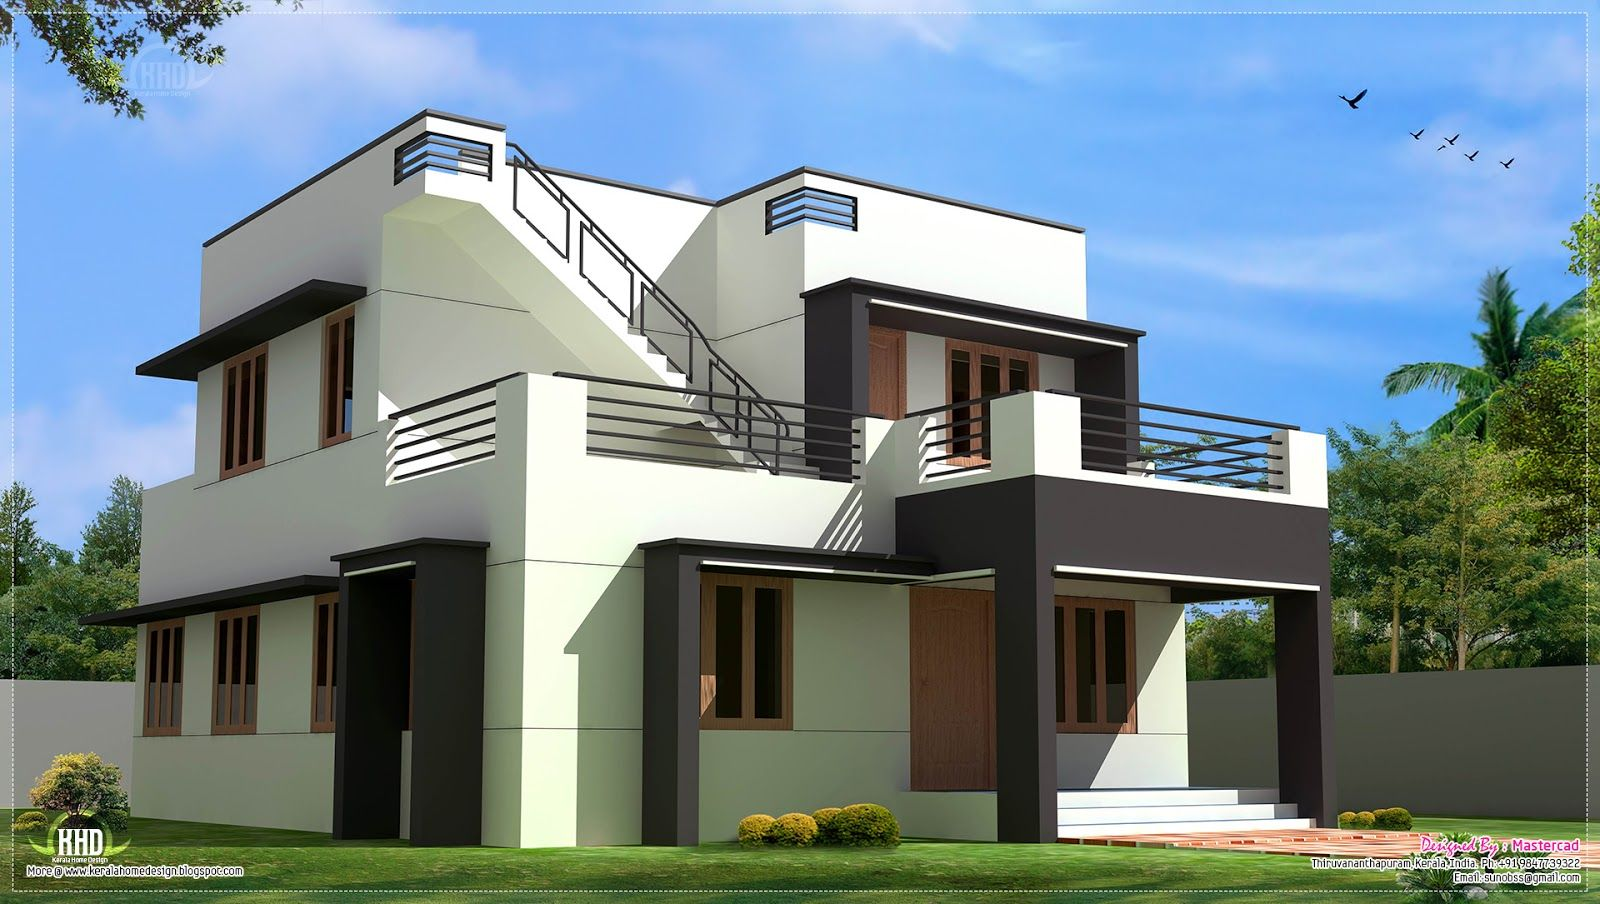 new design home plans. Kerala home design and floor plans  2800 sq Description from pinterest com